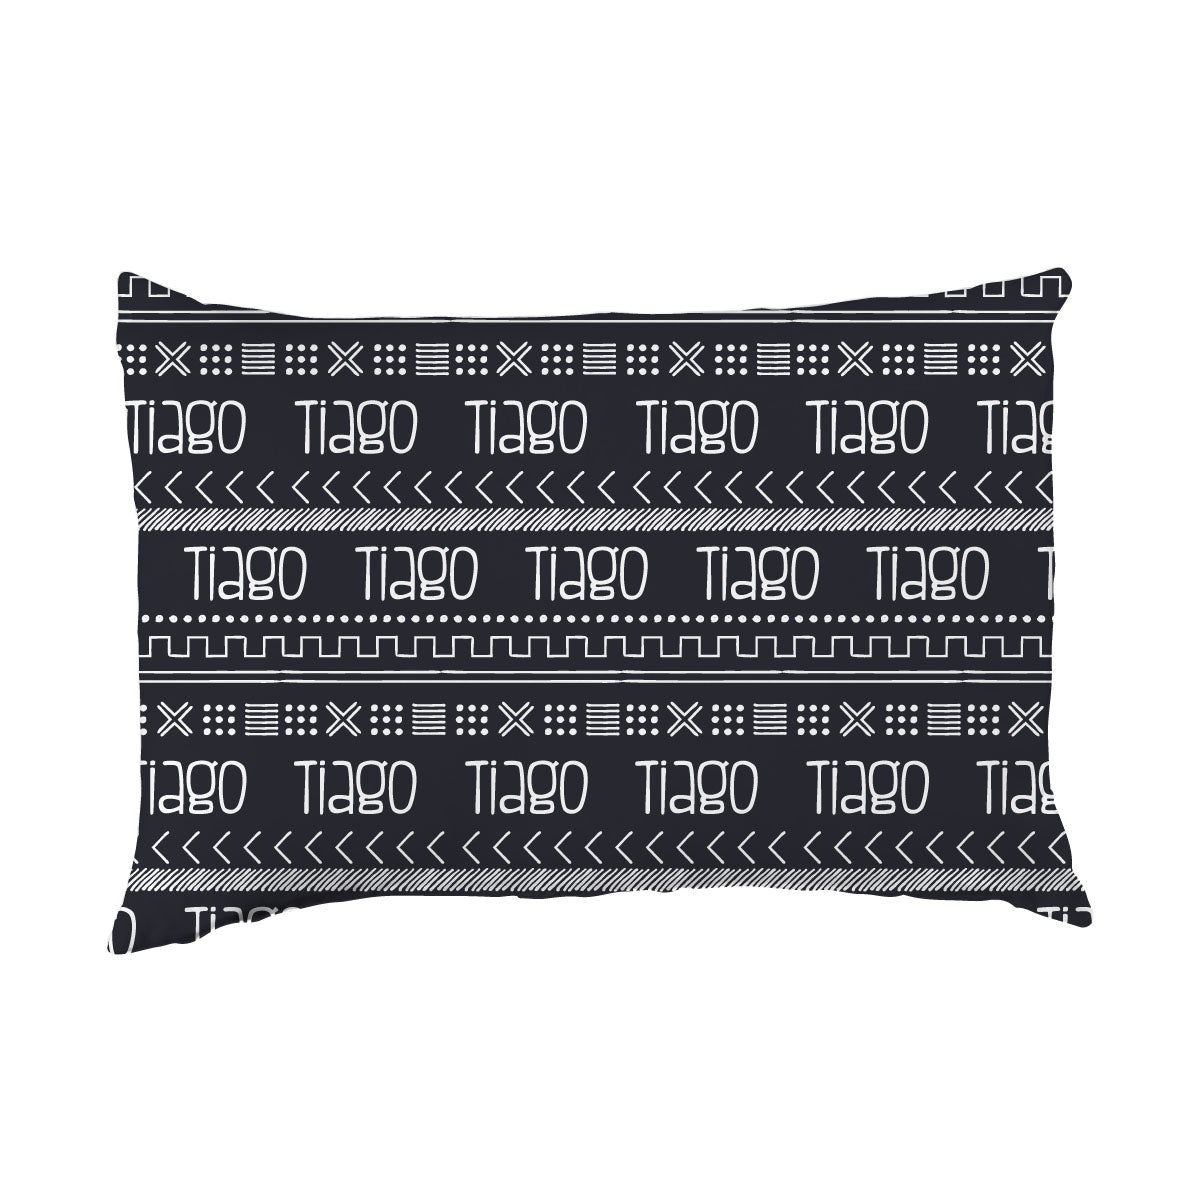 Tiago's Charcoal Tribe | Big Kid Pillow Case